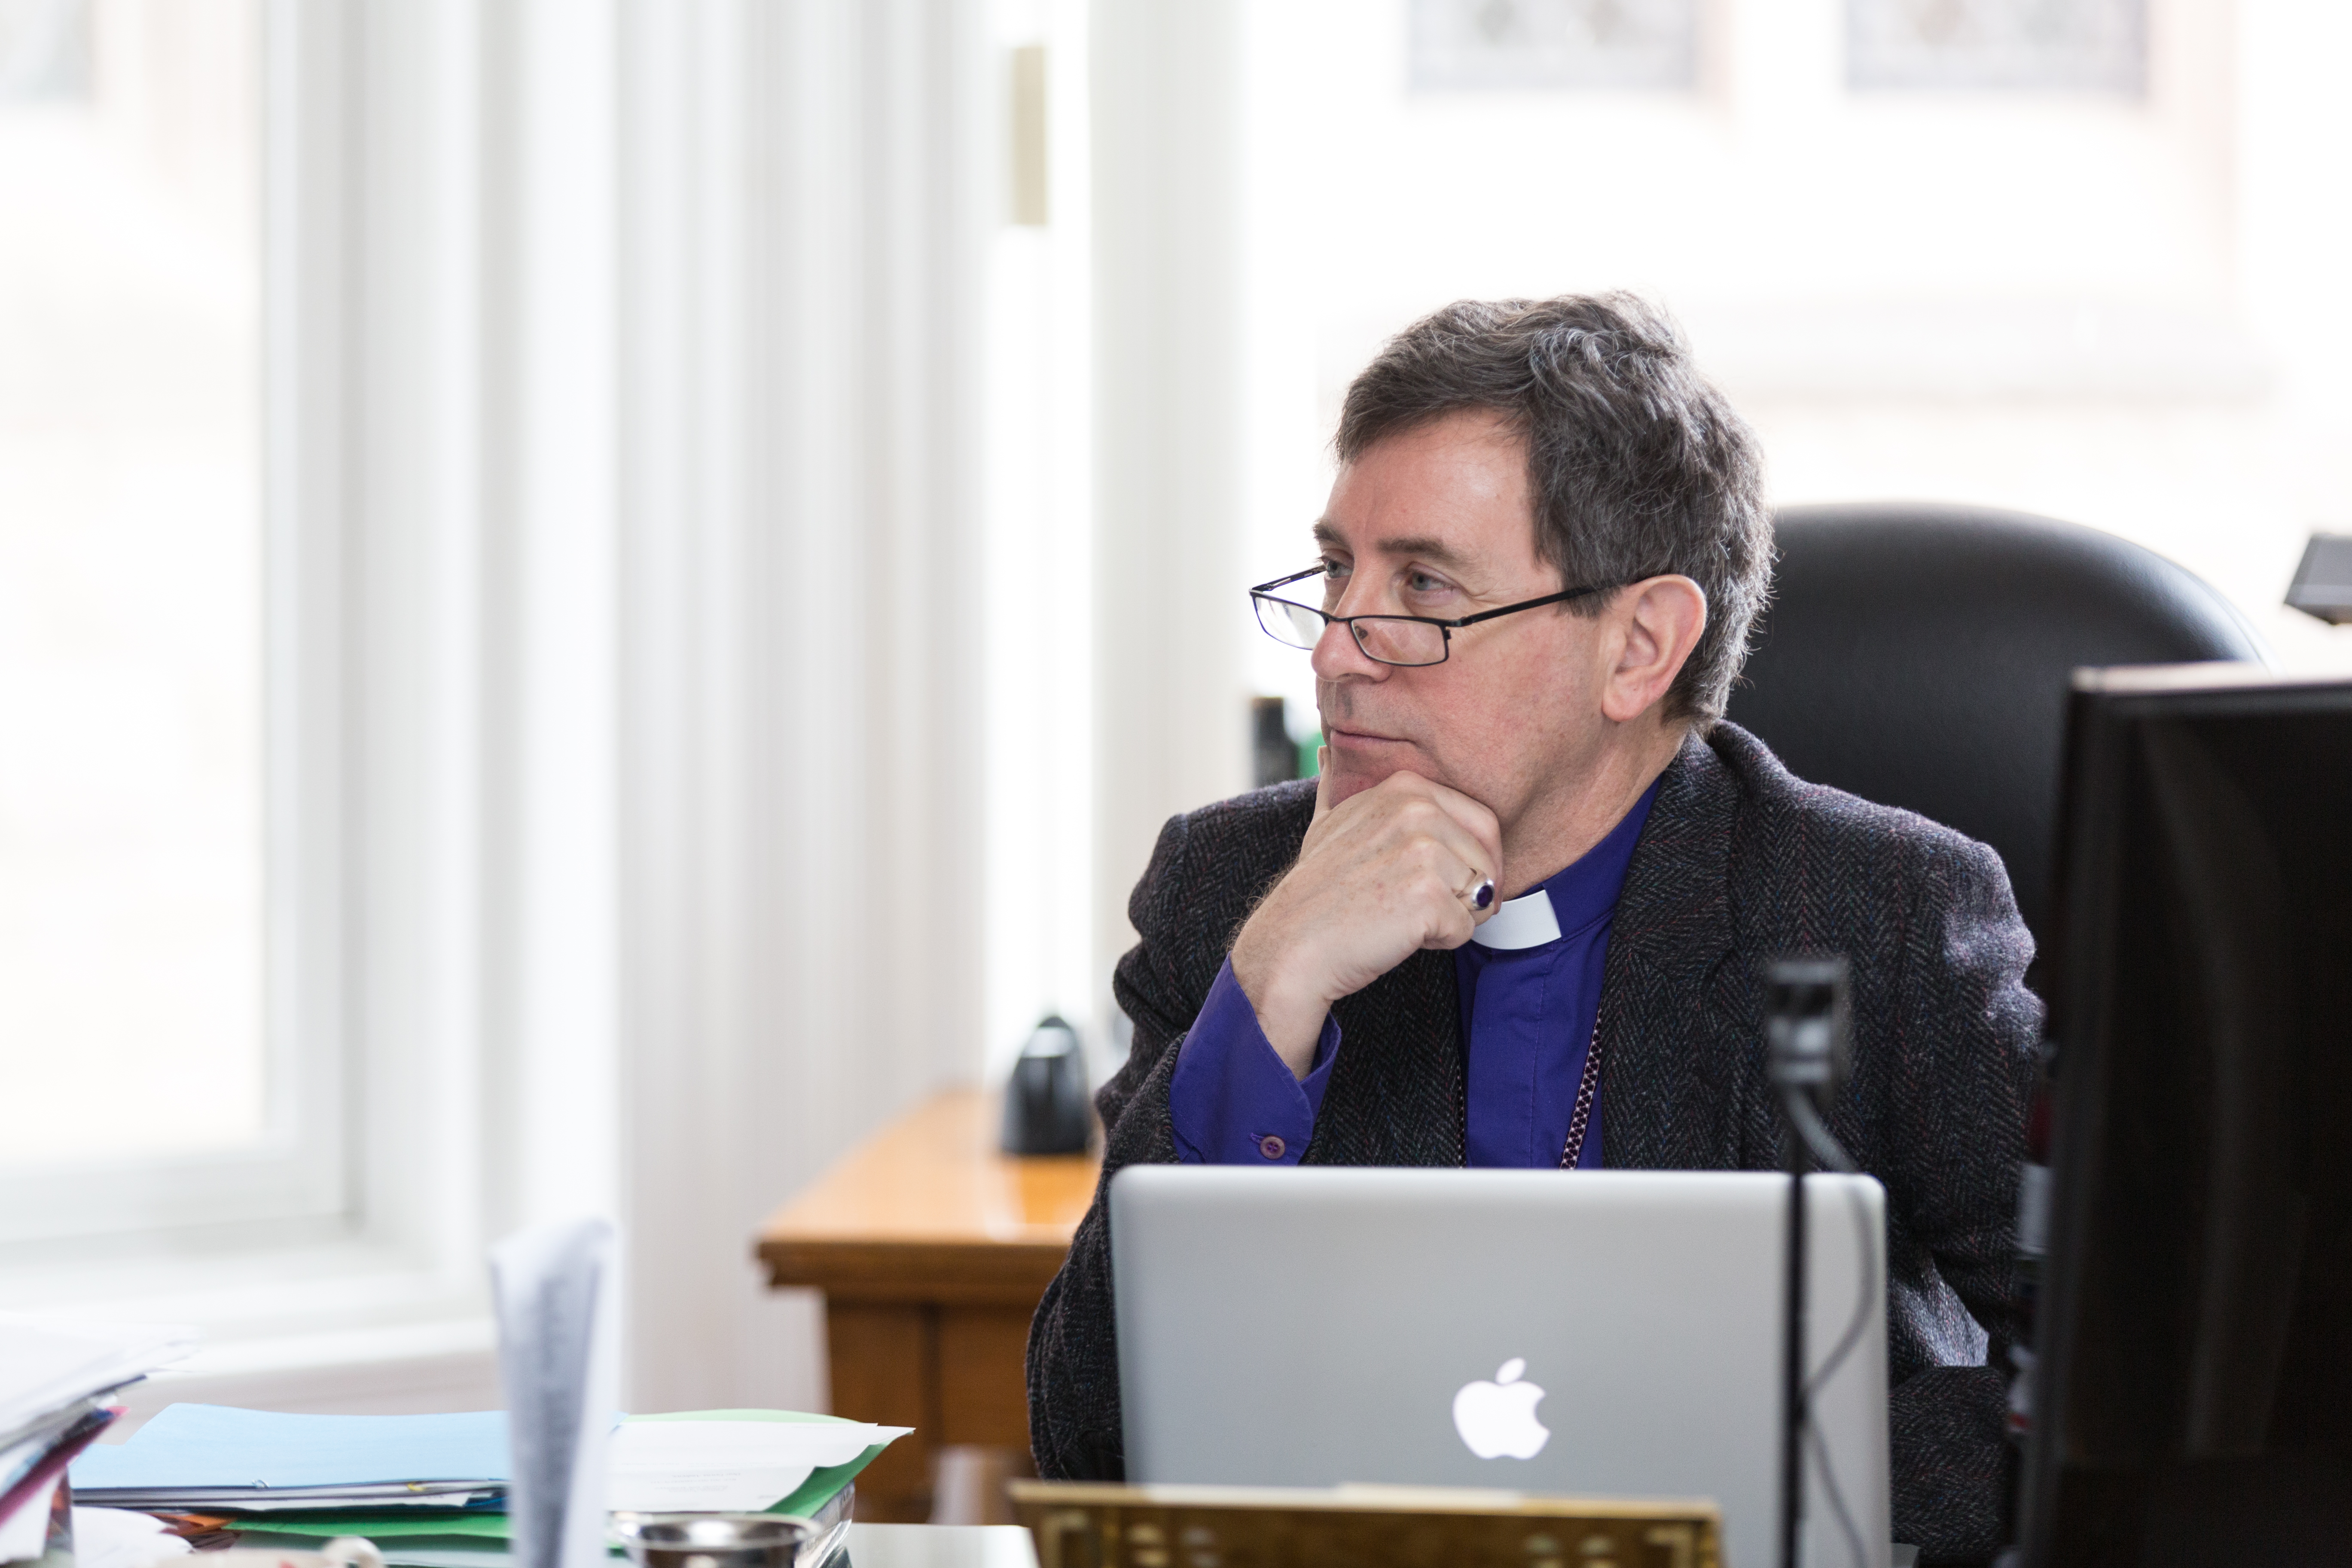 Wycliffe College Principal Stephen Andrews